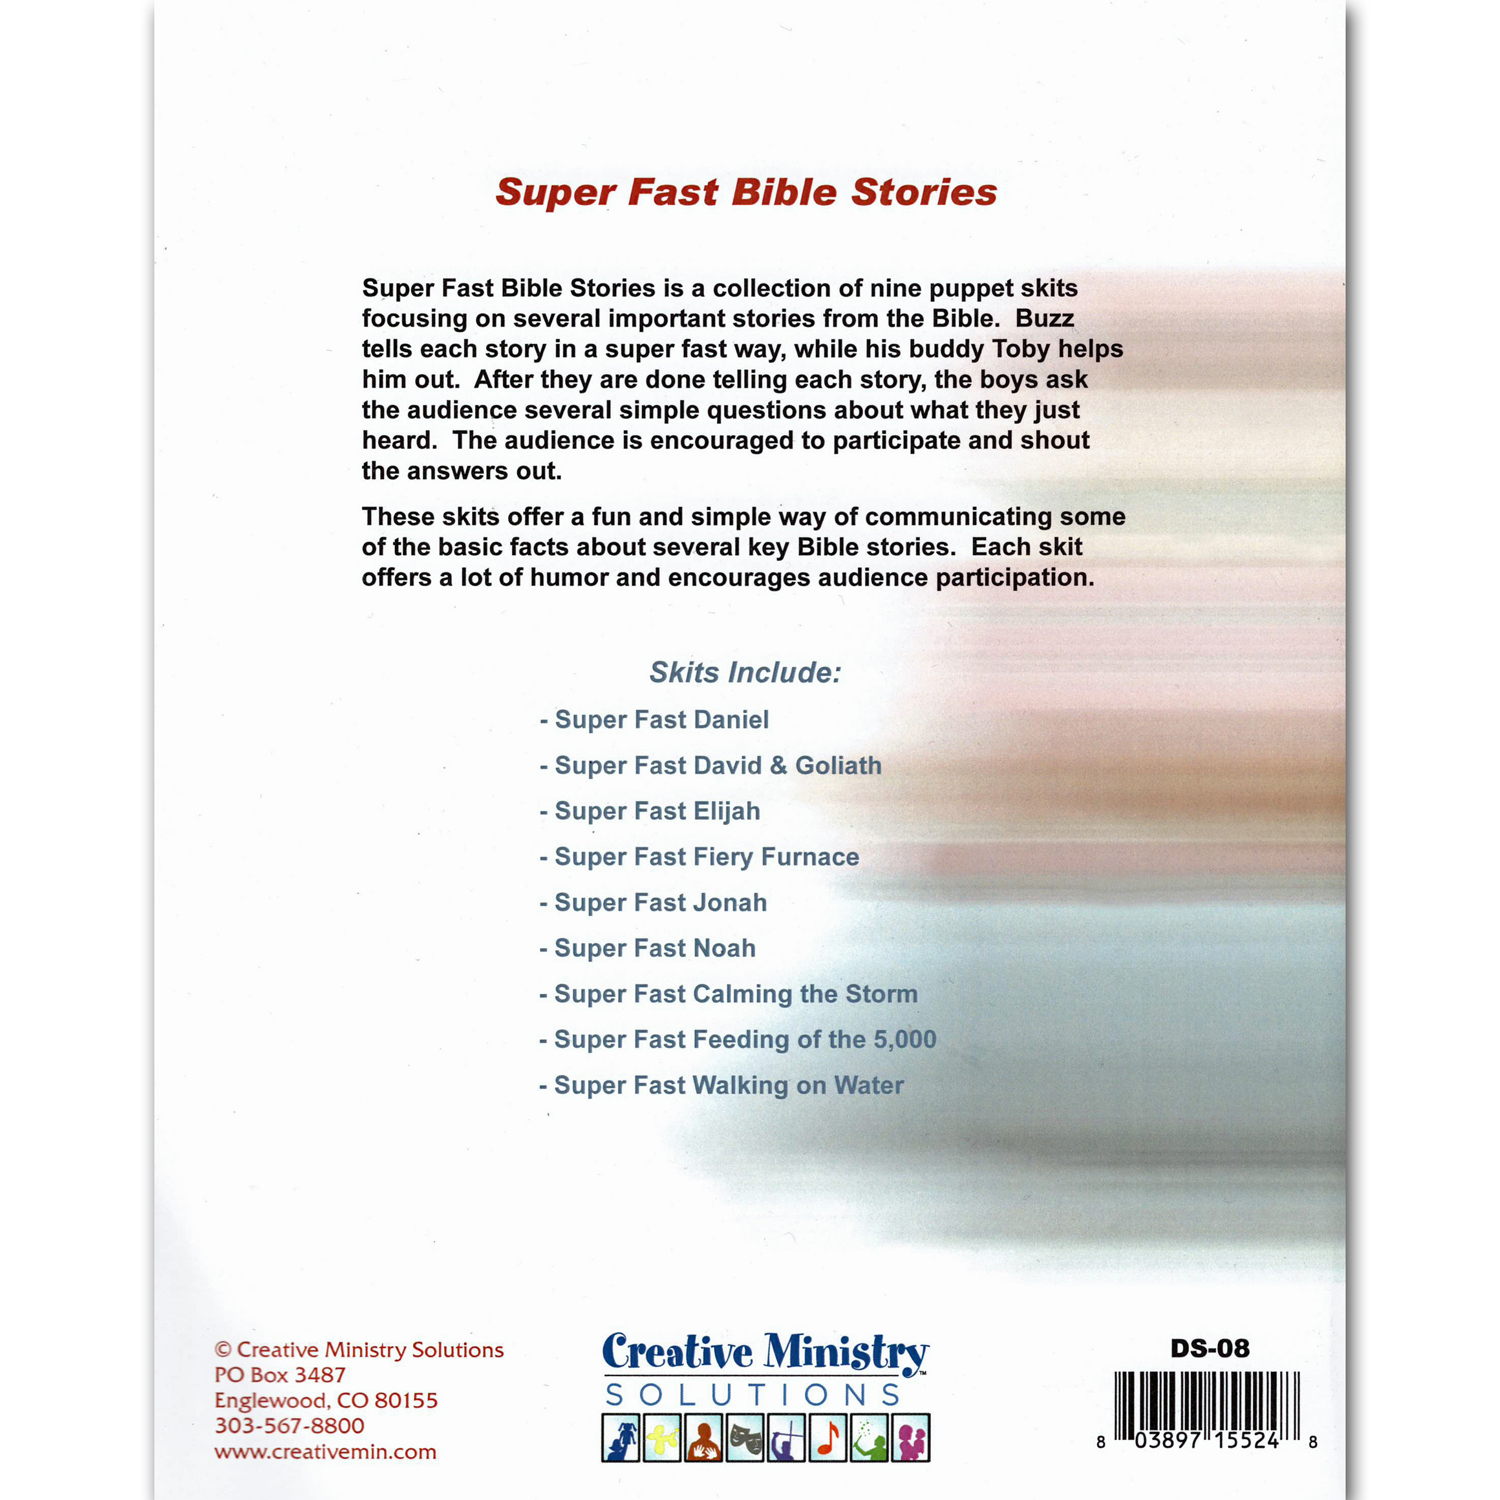 Super Fast Bible Stories